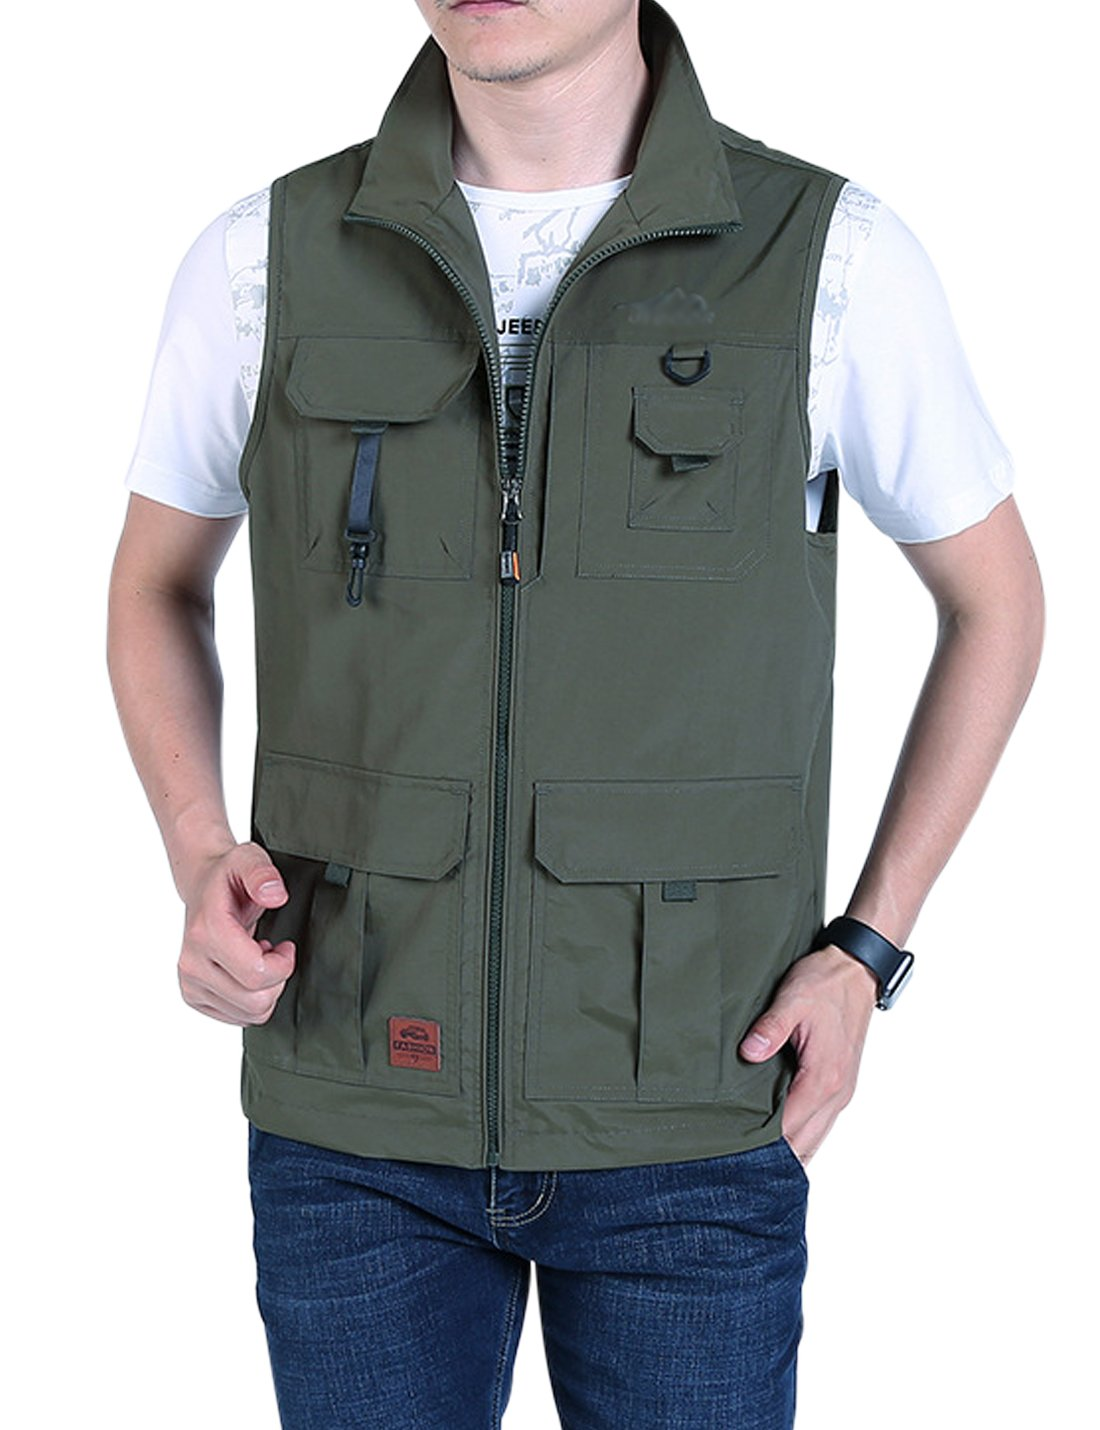 Jenkoon Men's Casual Lightweight Outdoor Travel Fishing Hunting Vest Jacket with Pockets (Olive Green-02, XX-Large) by Jenkoon